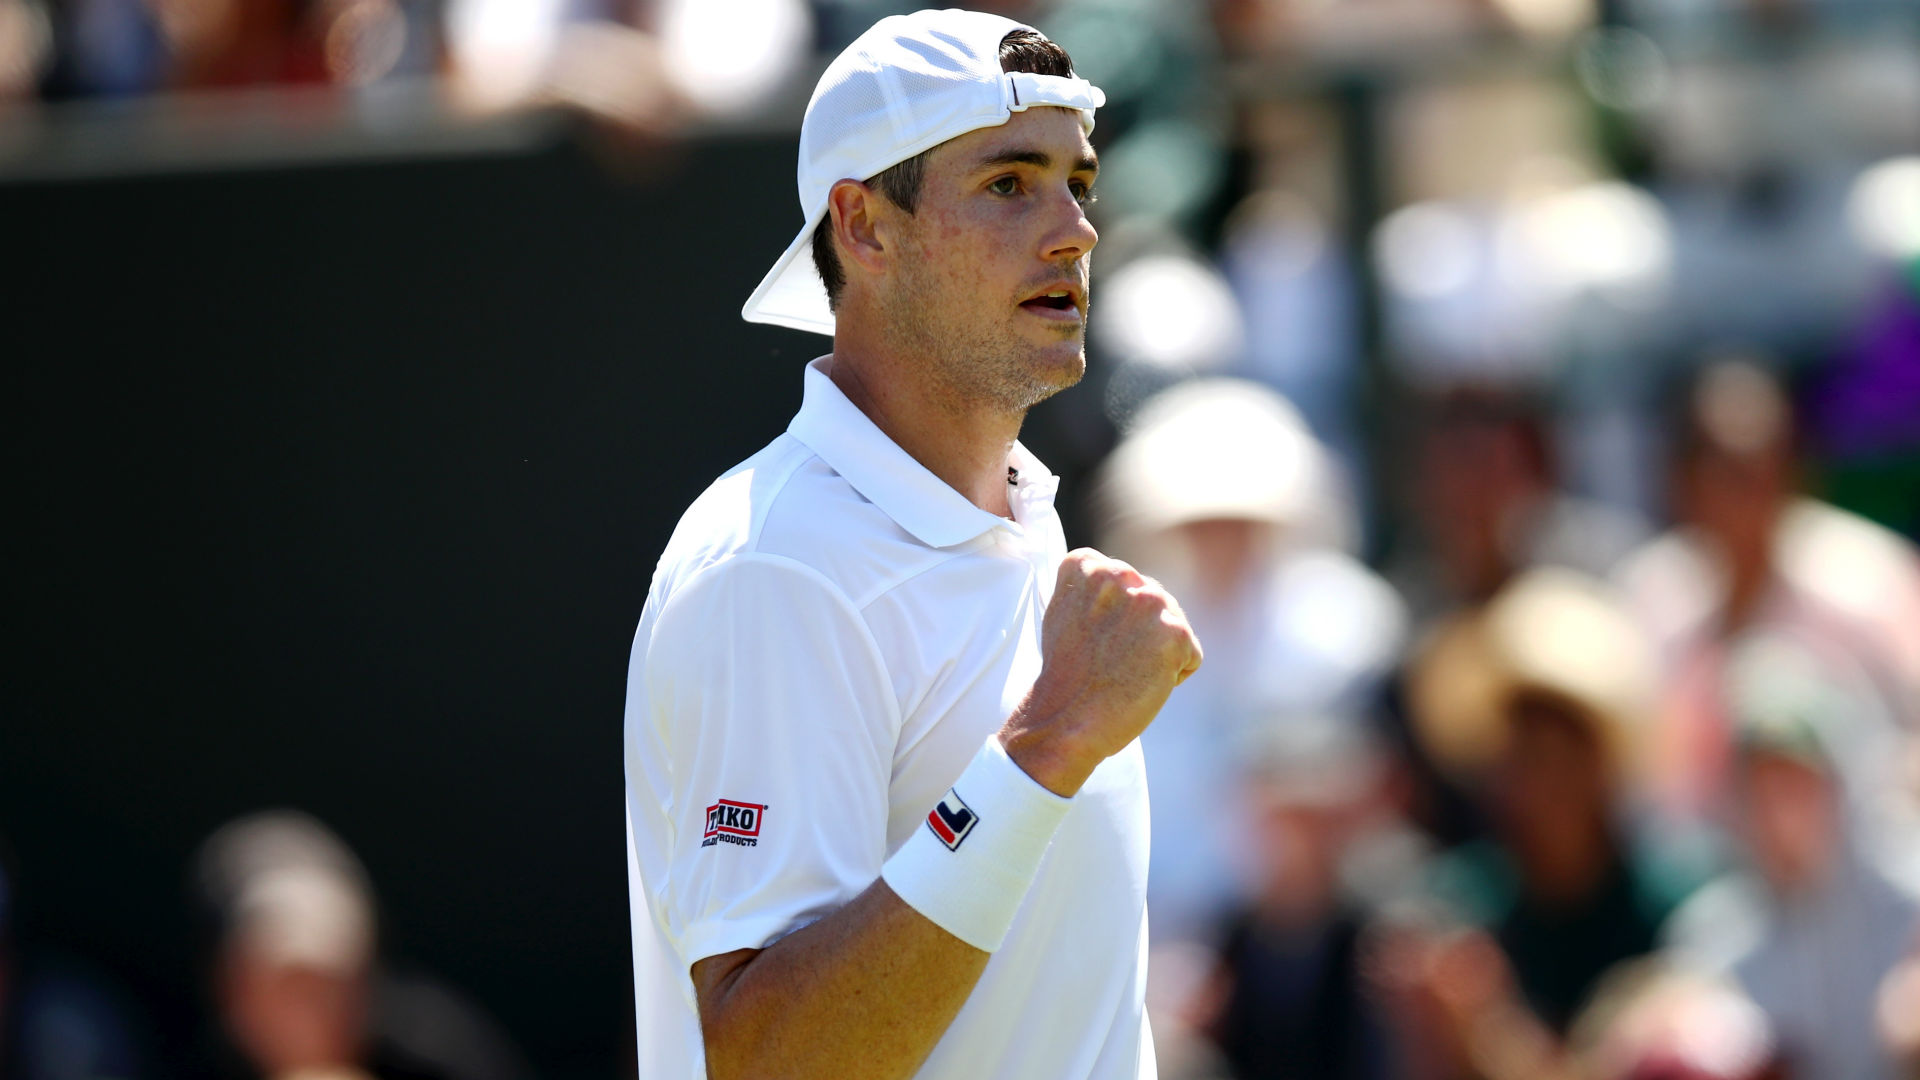 Isner remains on course in Newport, Jarry continues fine form at Swedish Open